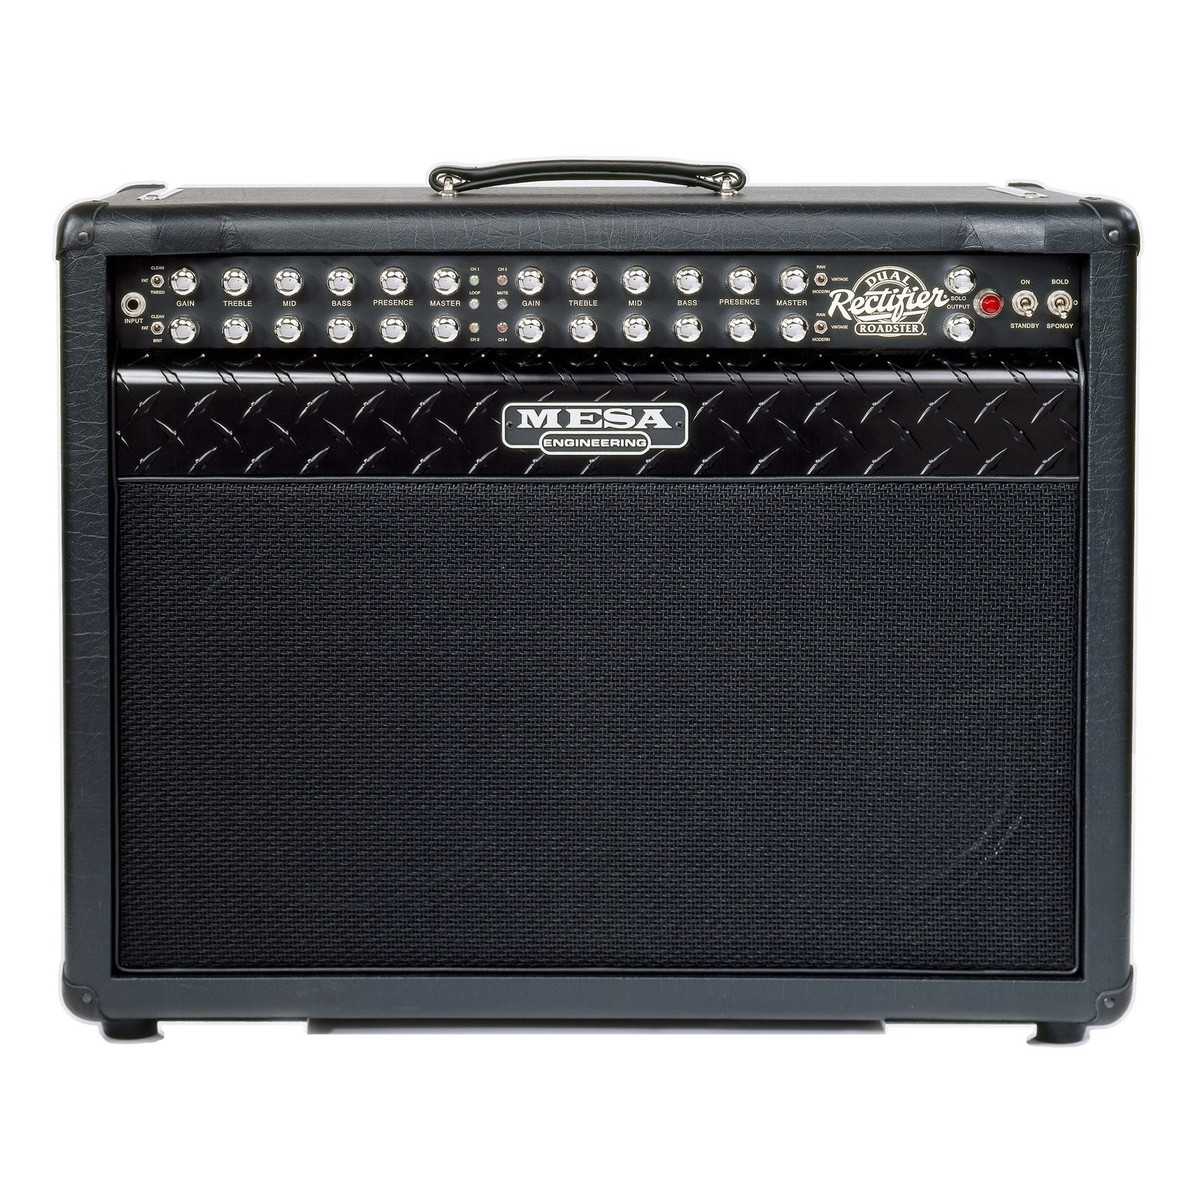 Mesa Roadster Mesa Boogie Roadster 2x12 Combo At Gear4music Ie